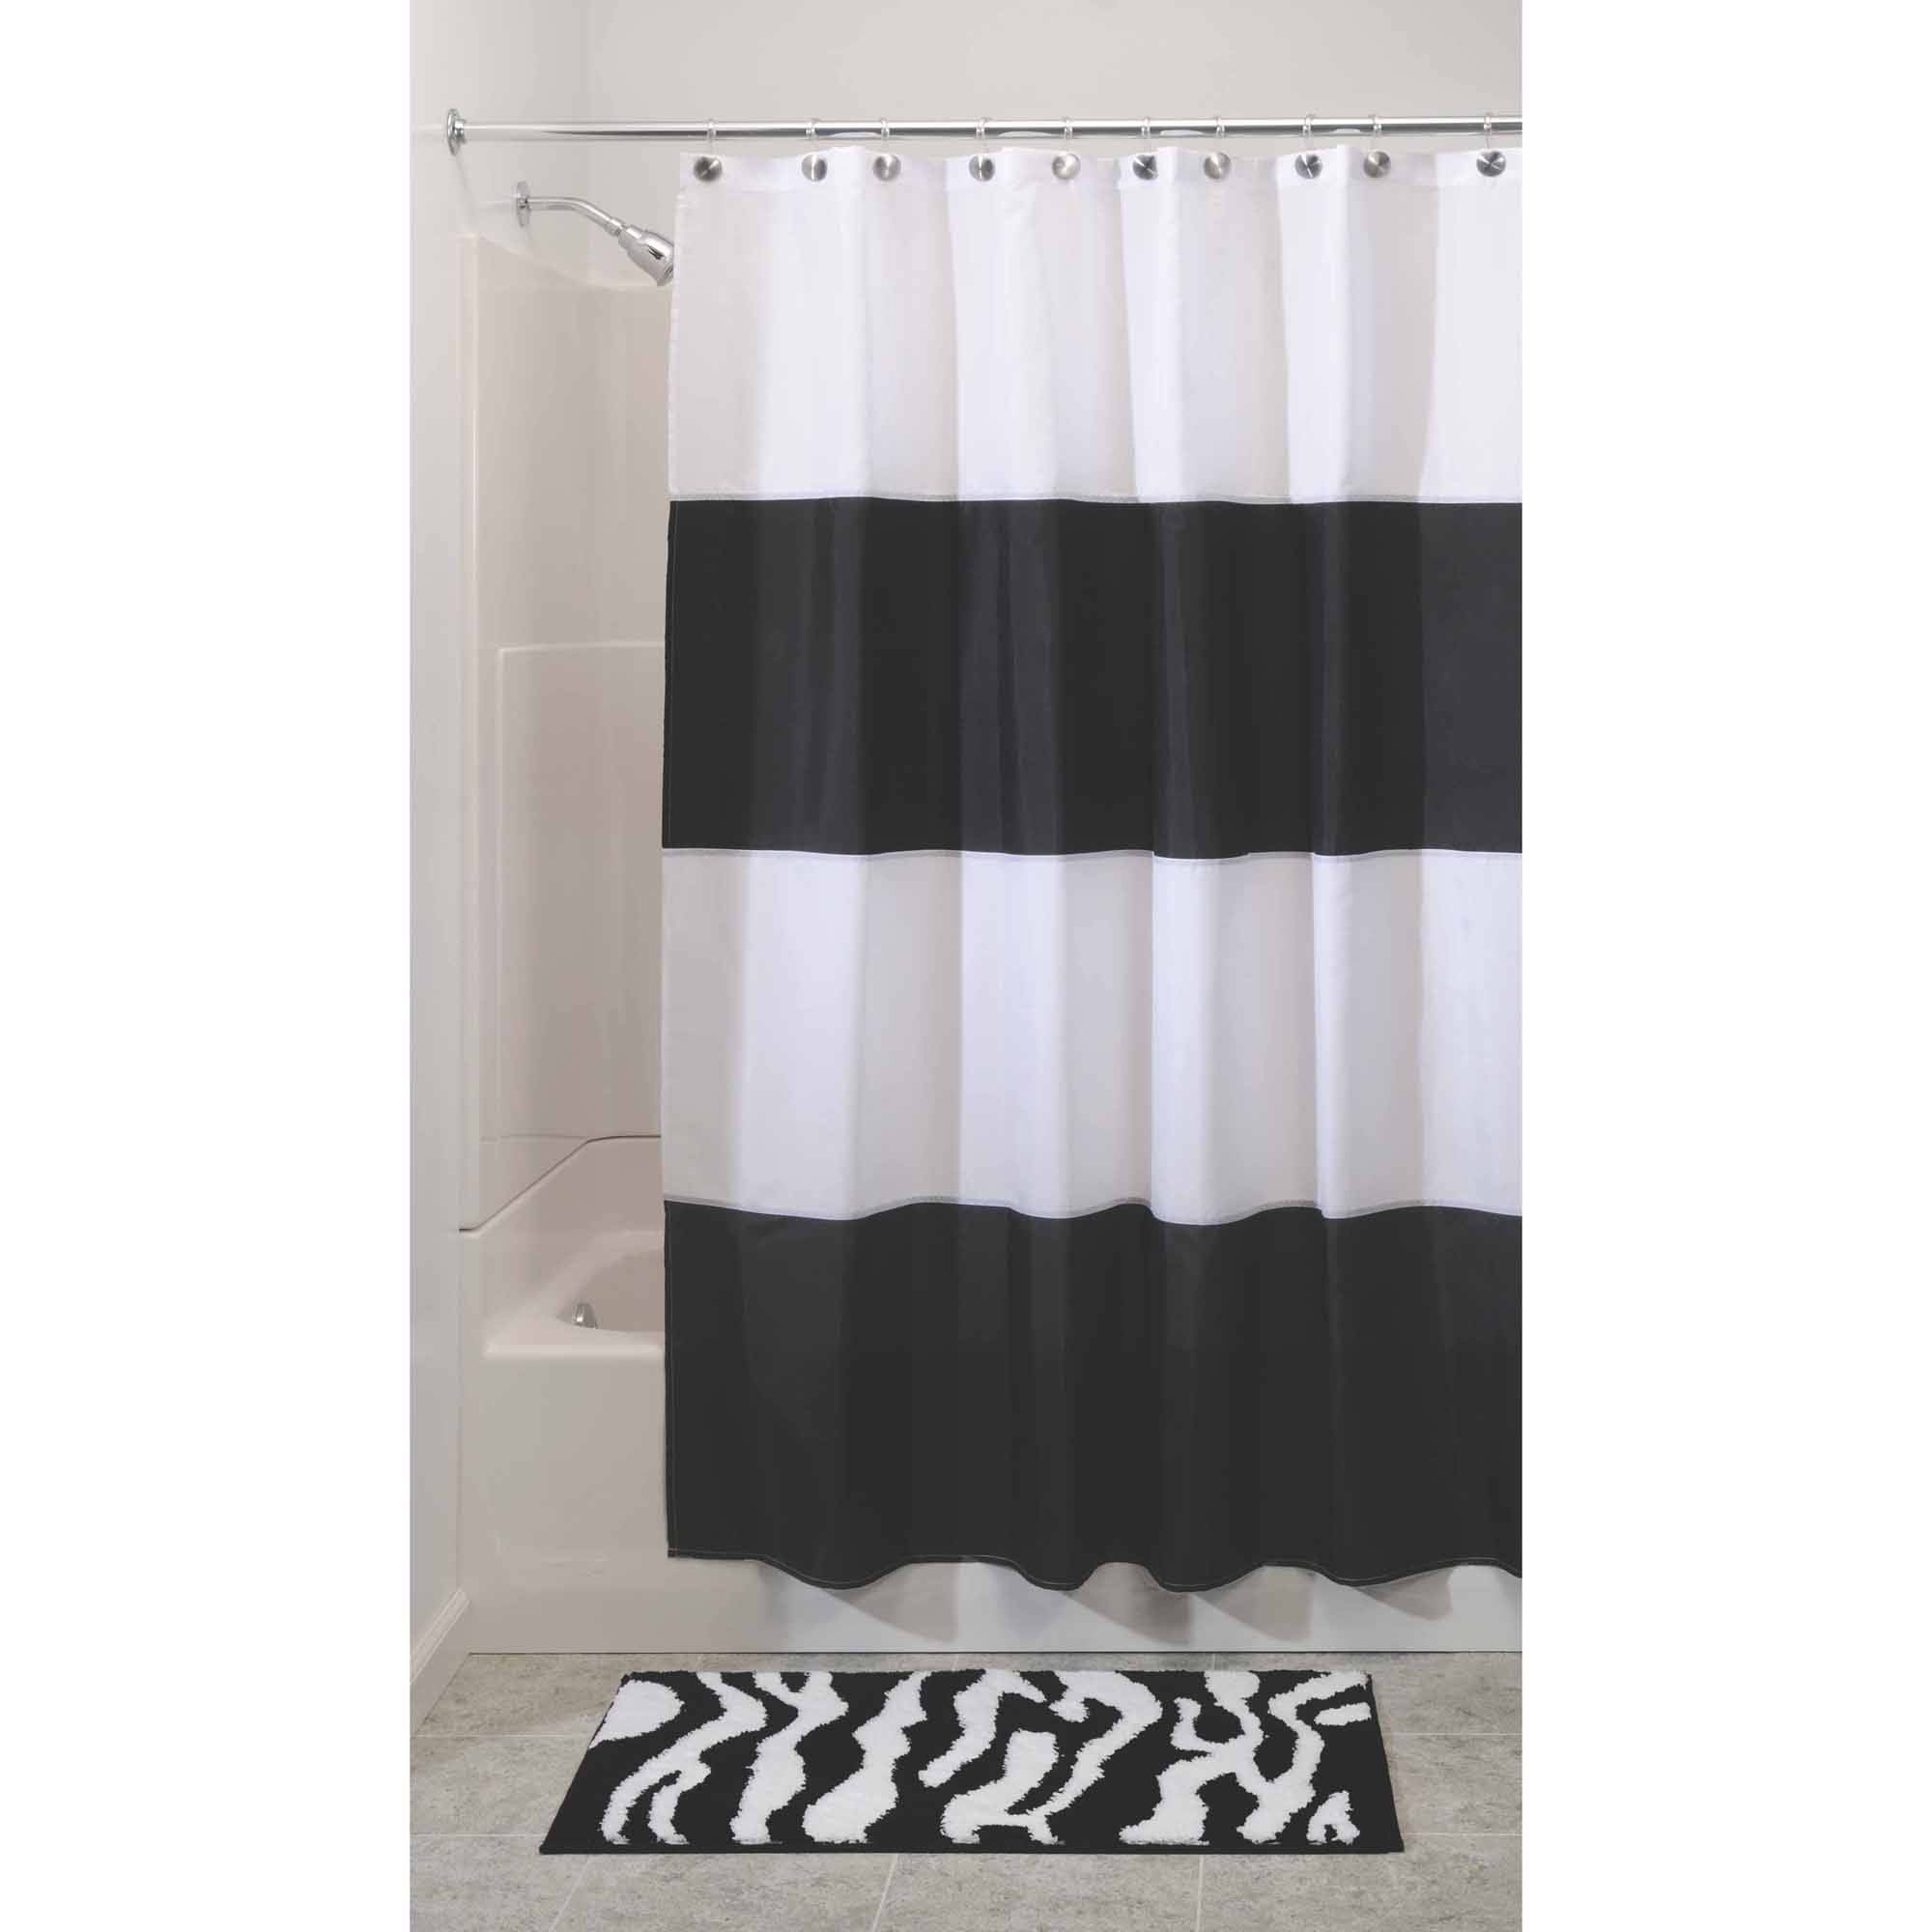 Interdesign Zeno Fabric Shower Curtain Standard 72 X 72